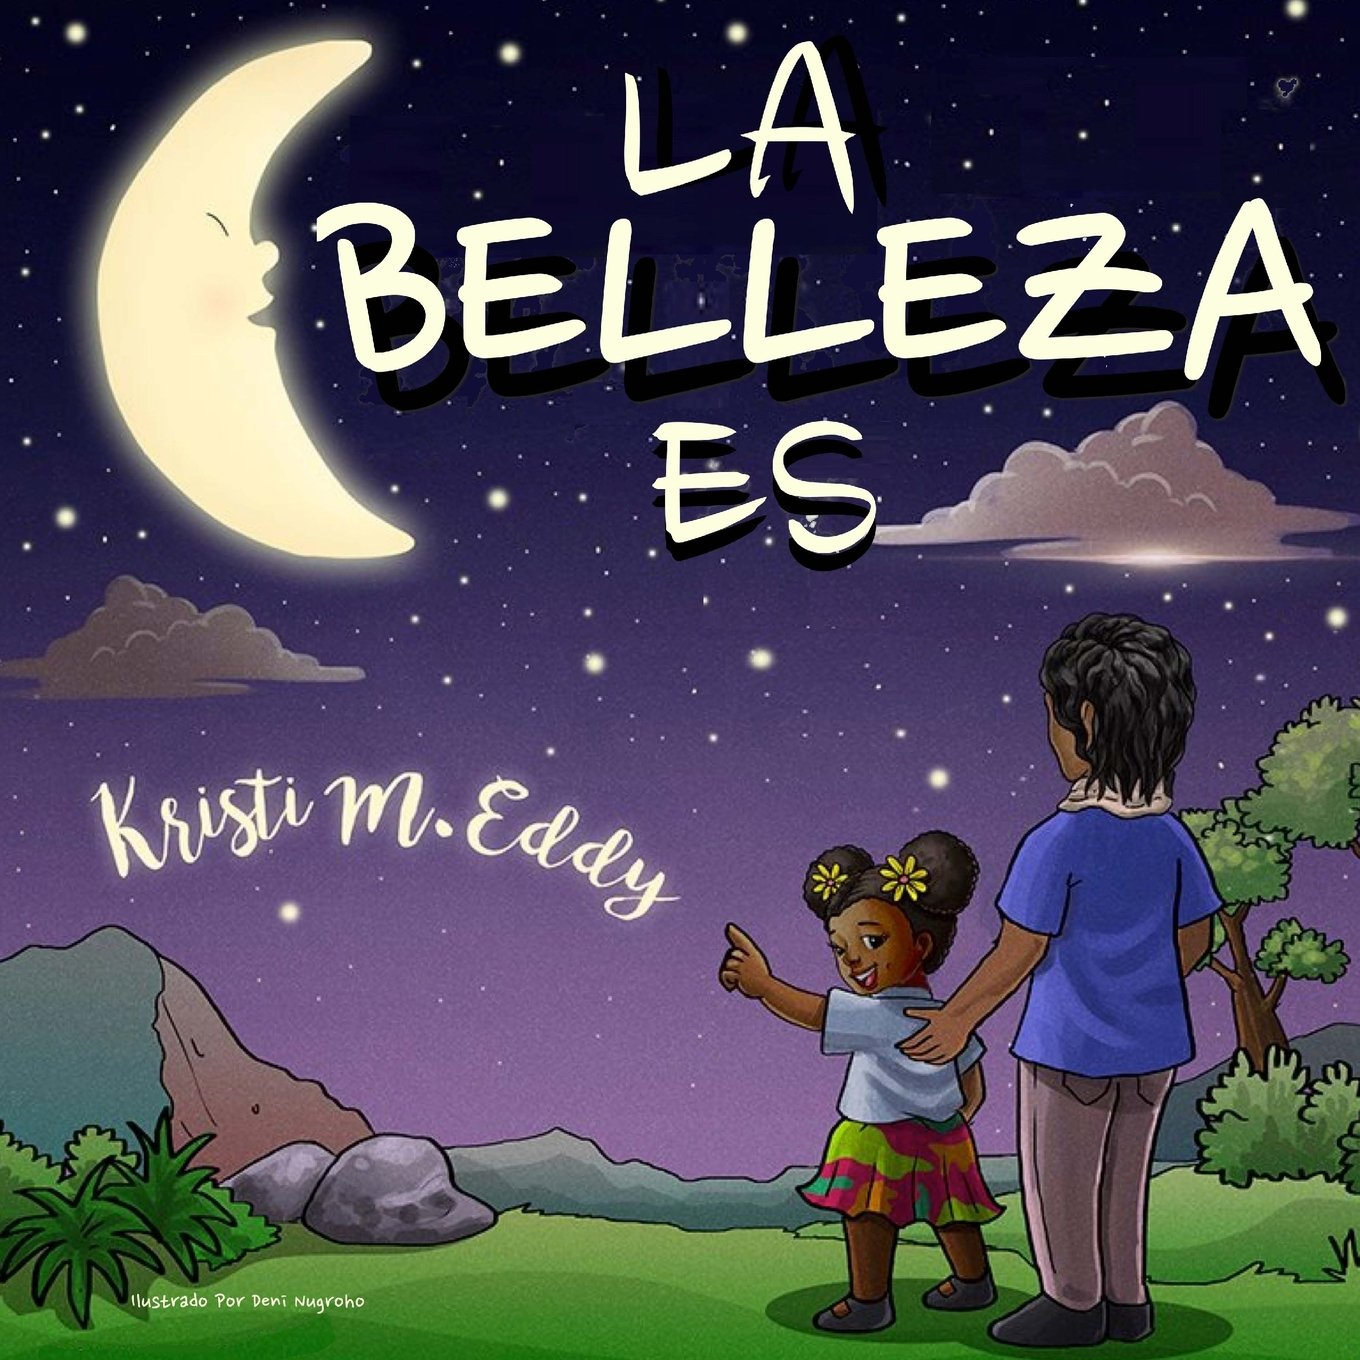 la belleza amazon cover.jpg